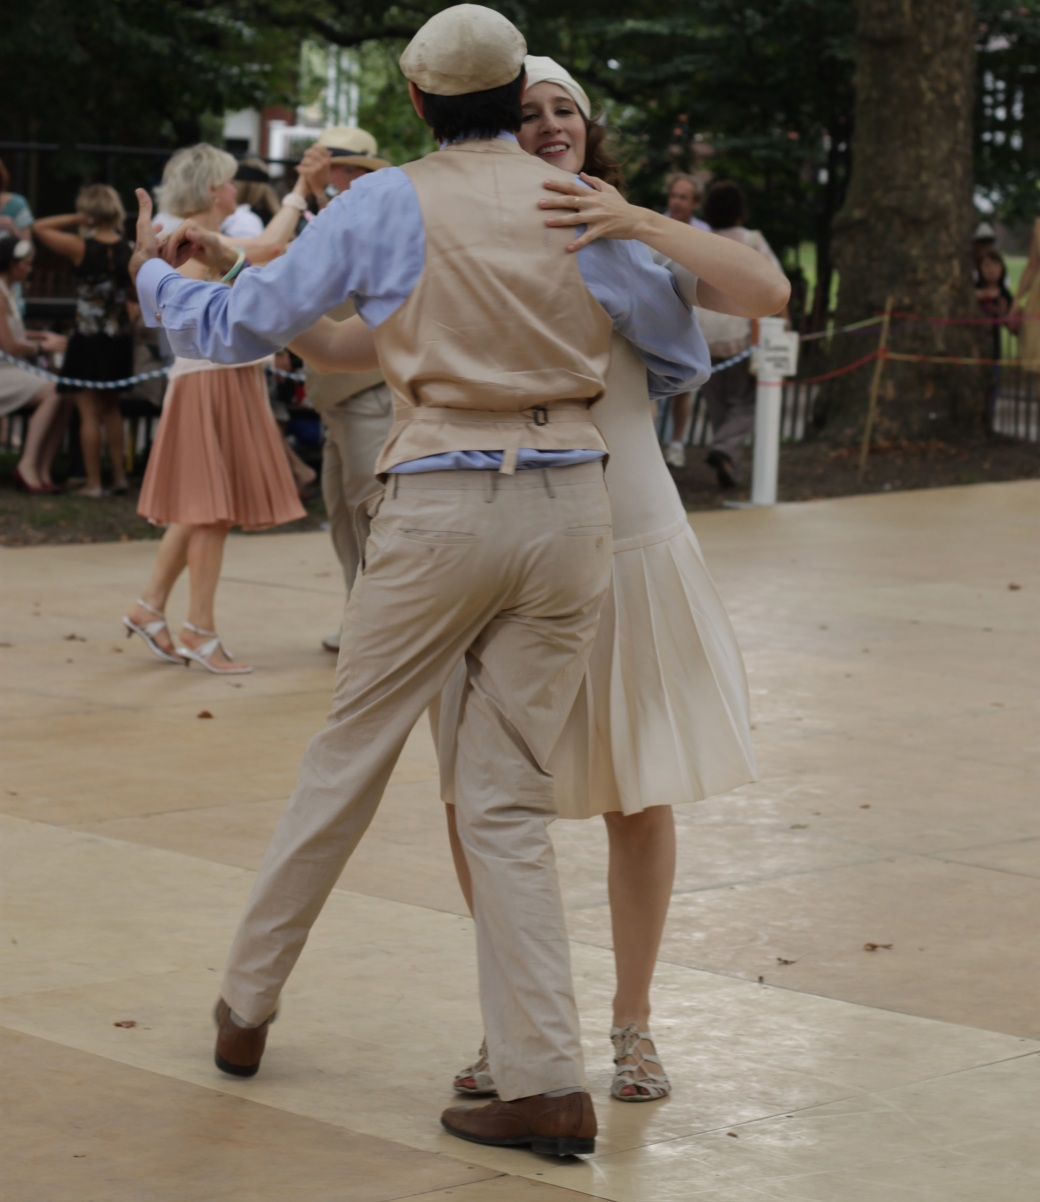 new york city governors island jazz age lawn party august 17 2014 69